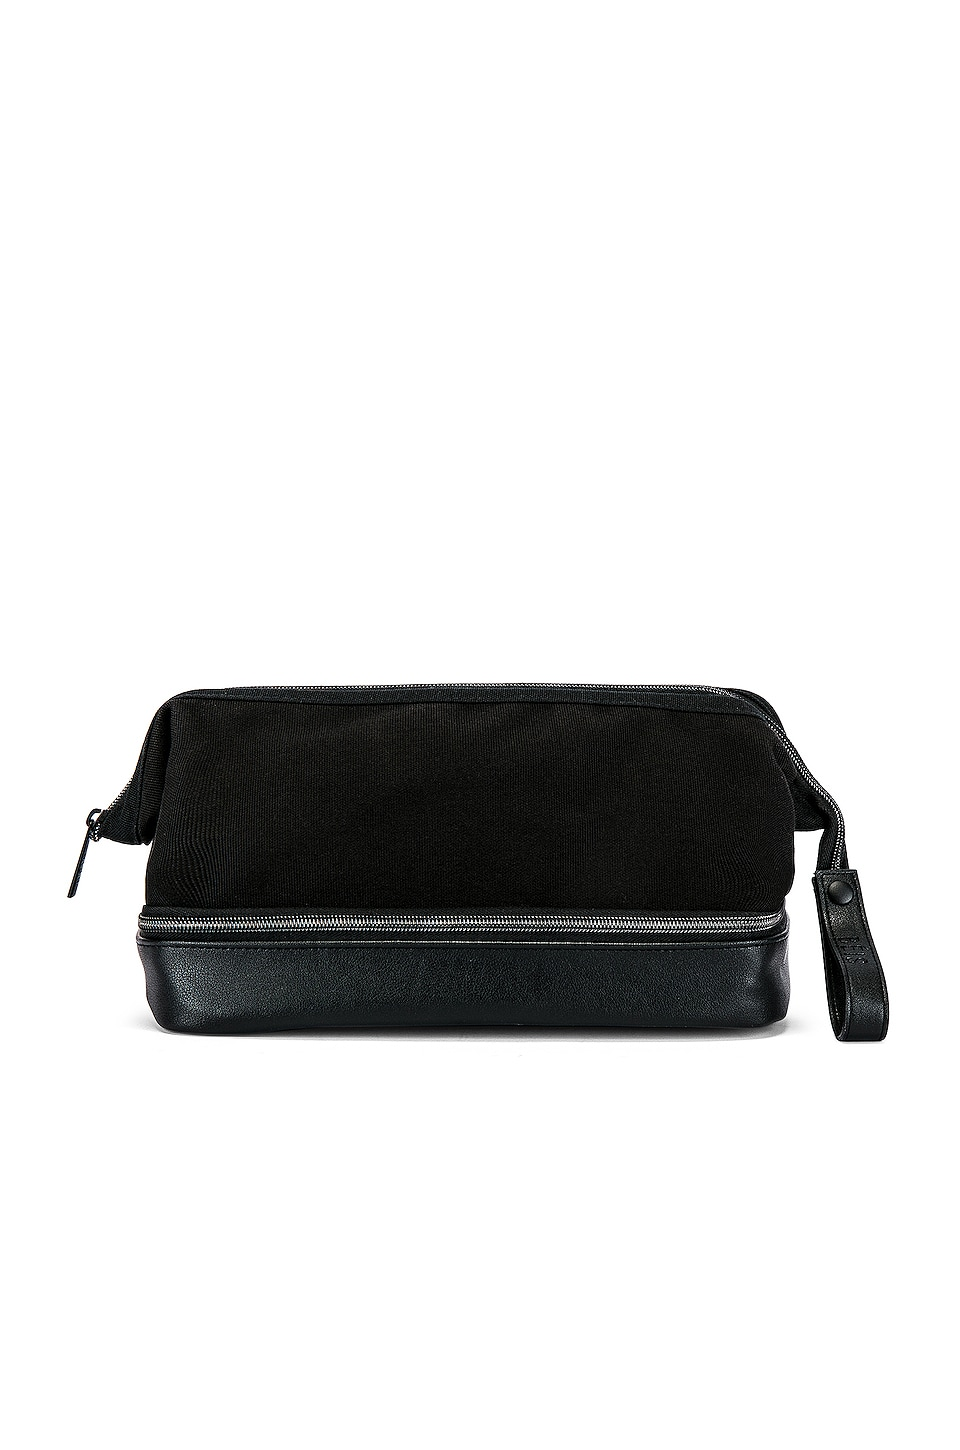 BEIS Dopp Kit in Black